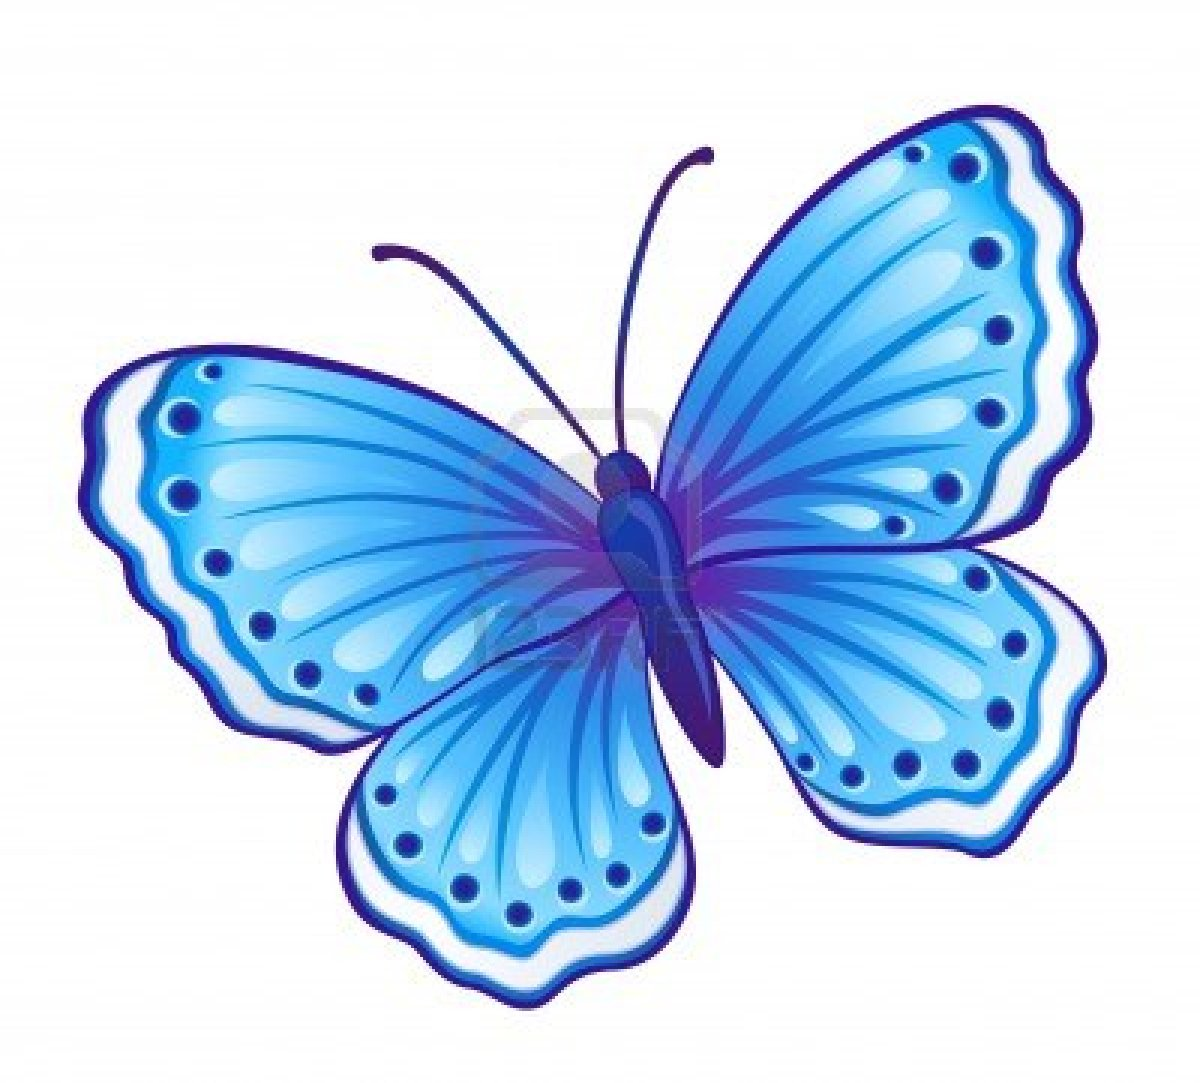 1200x1083 Butterfly With Wings Open Clip Art Cliparts